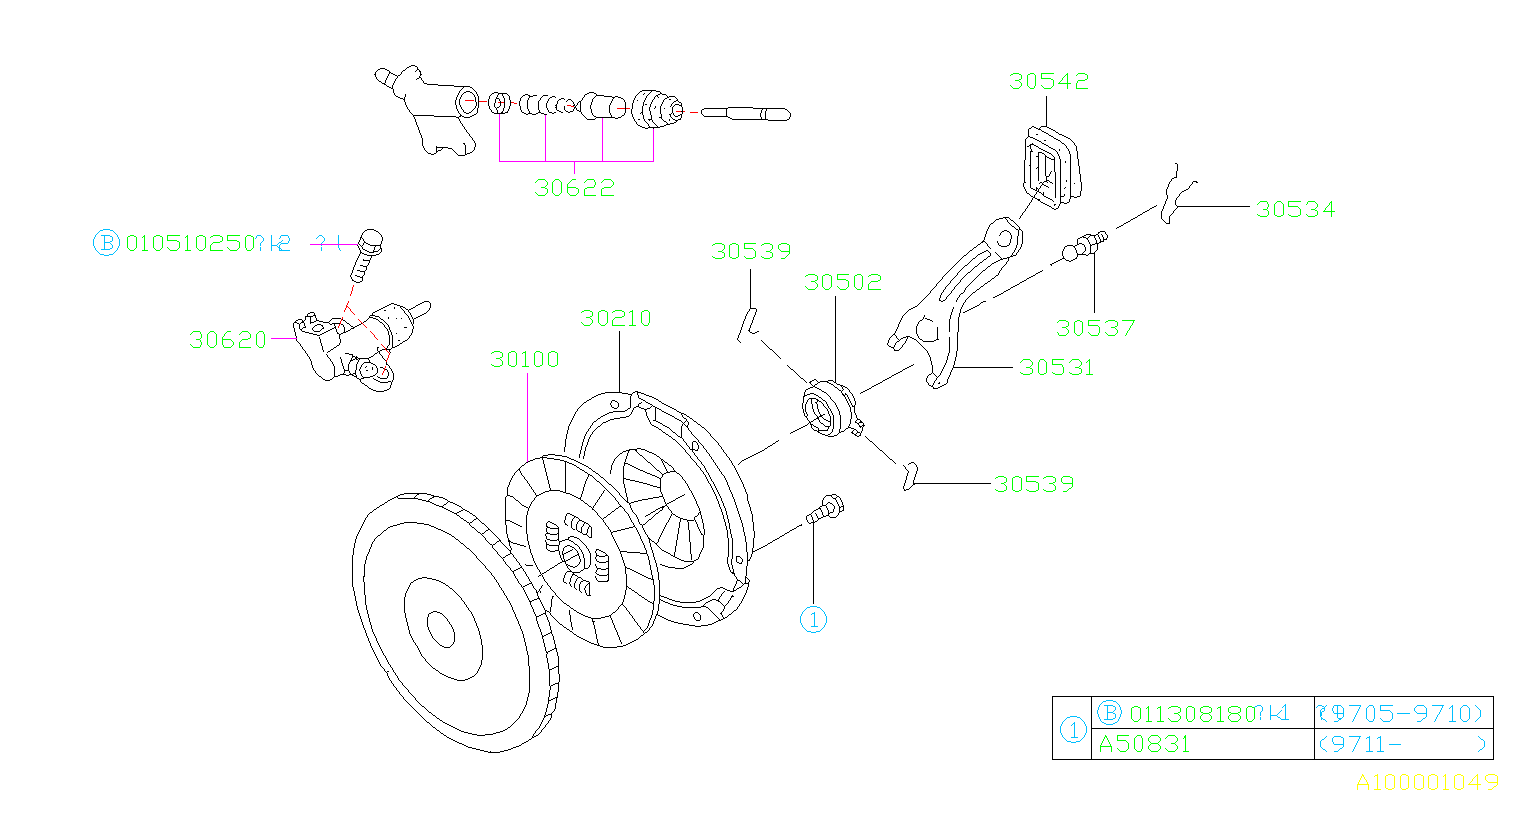 Subaru Forester Clutch Slave Cylinder Repair Kit